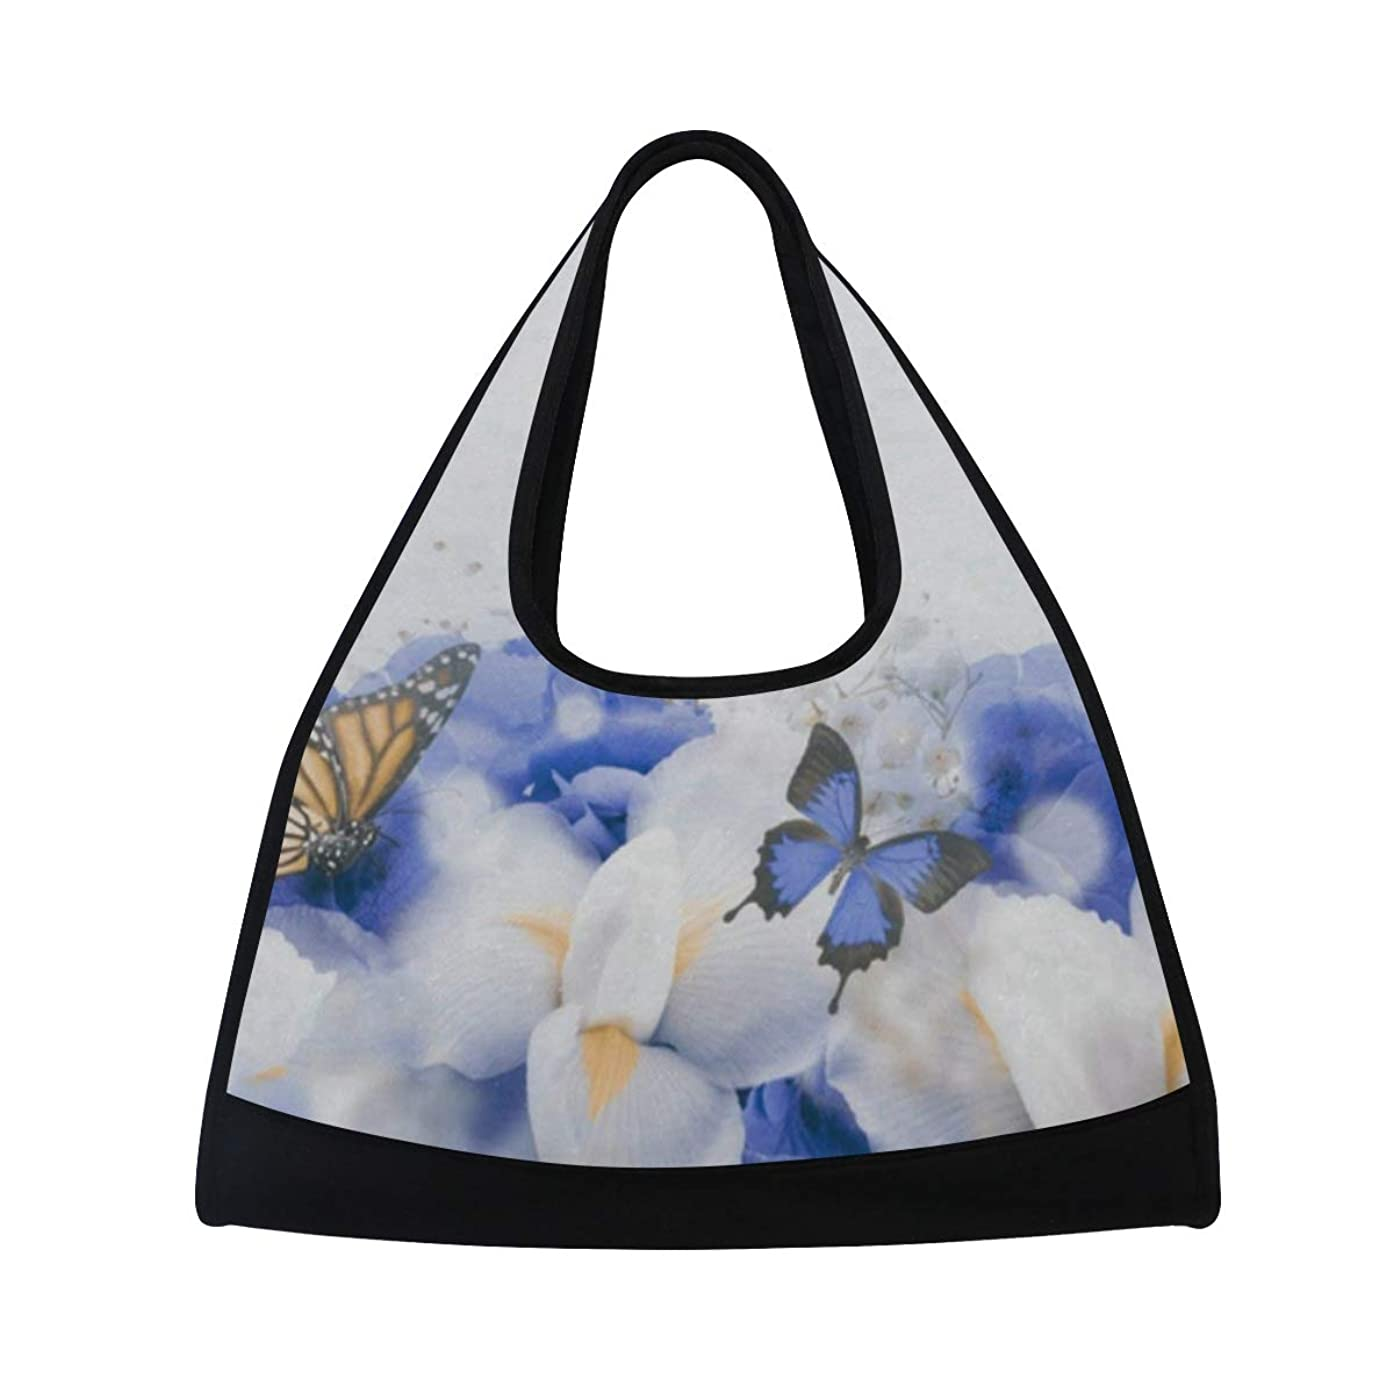 Gym Bag Butterfly In Flowers Women Yoga Canvas Duffel Bag Tennis Racket Tote Bags